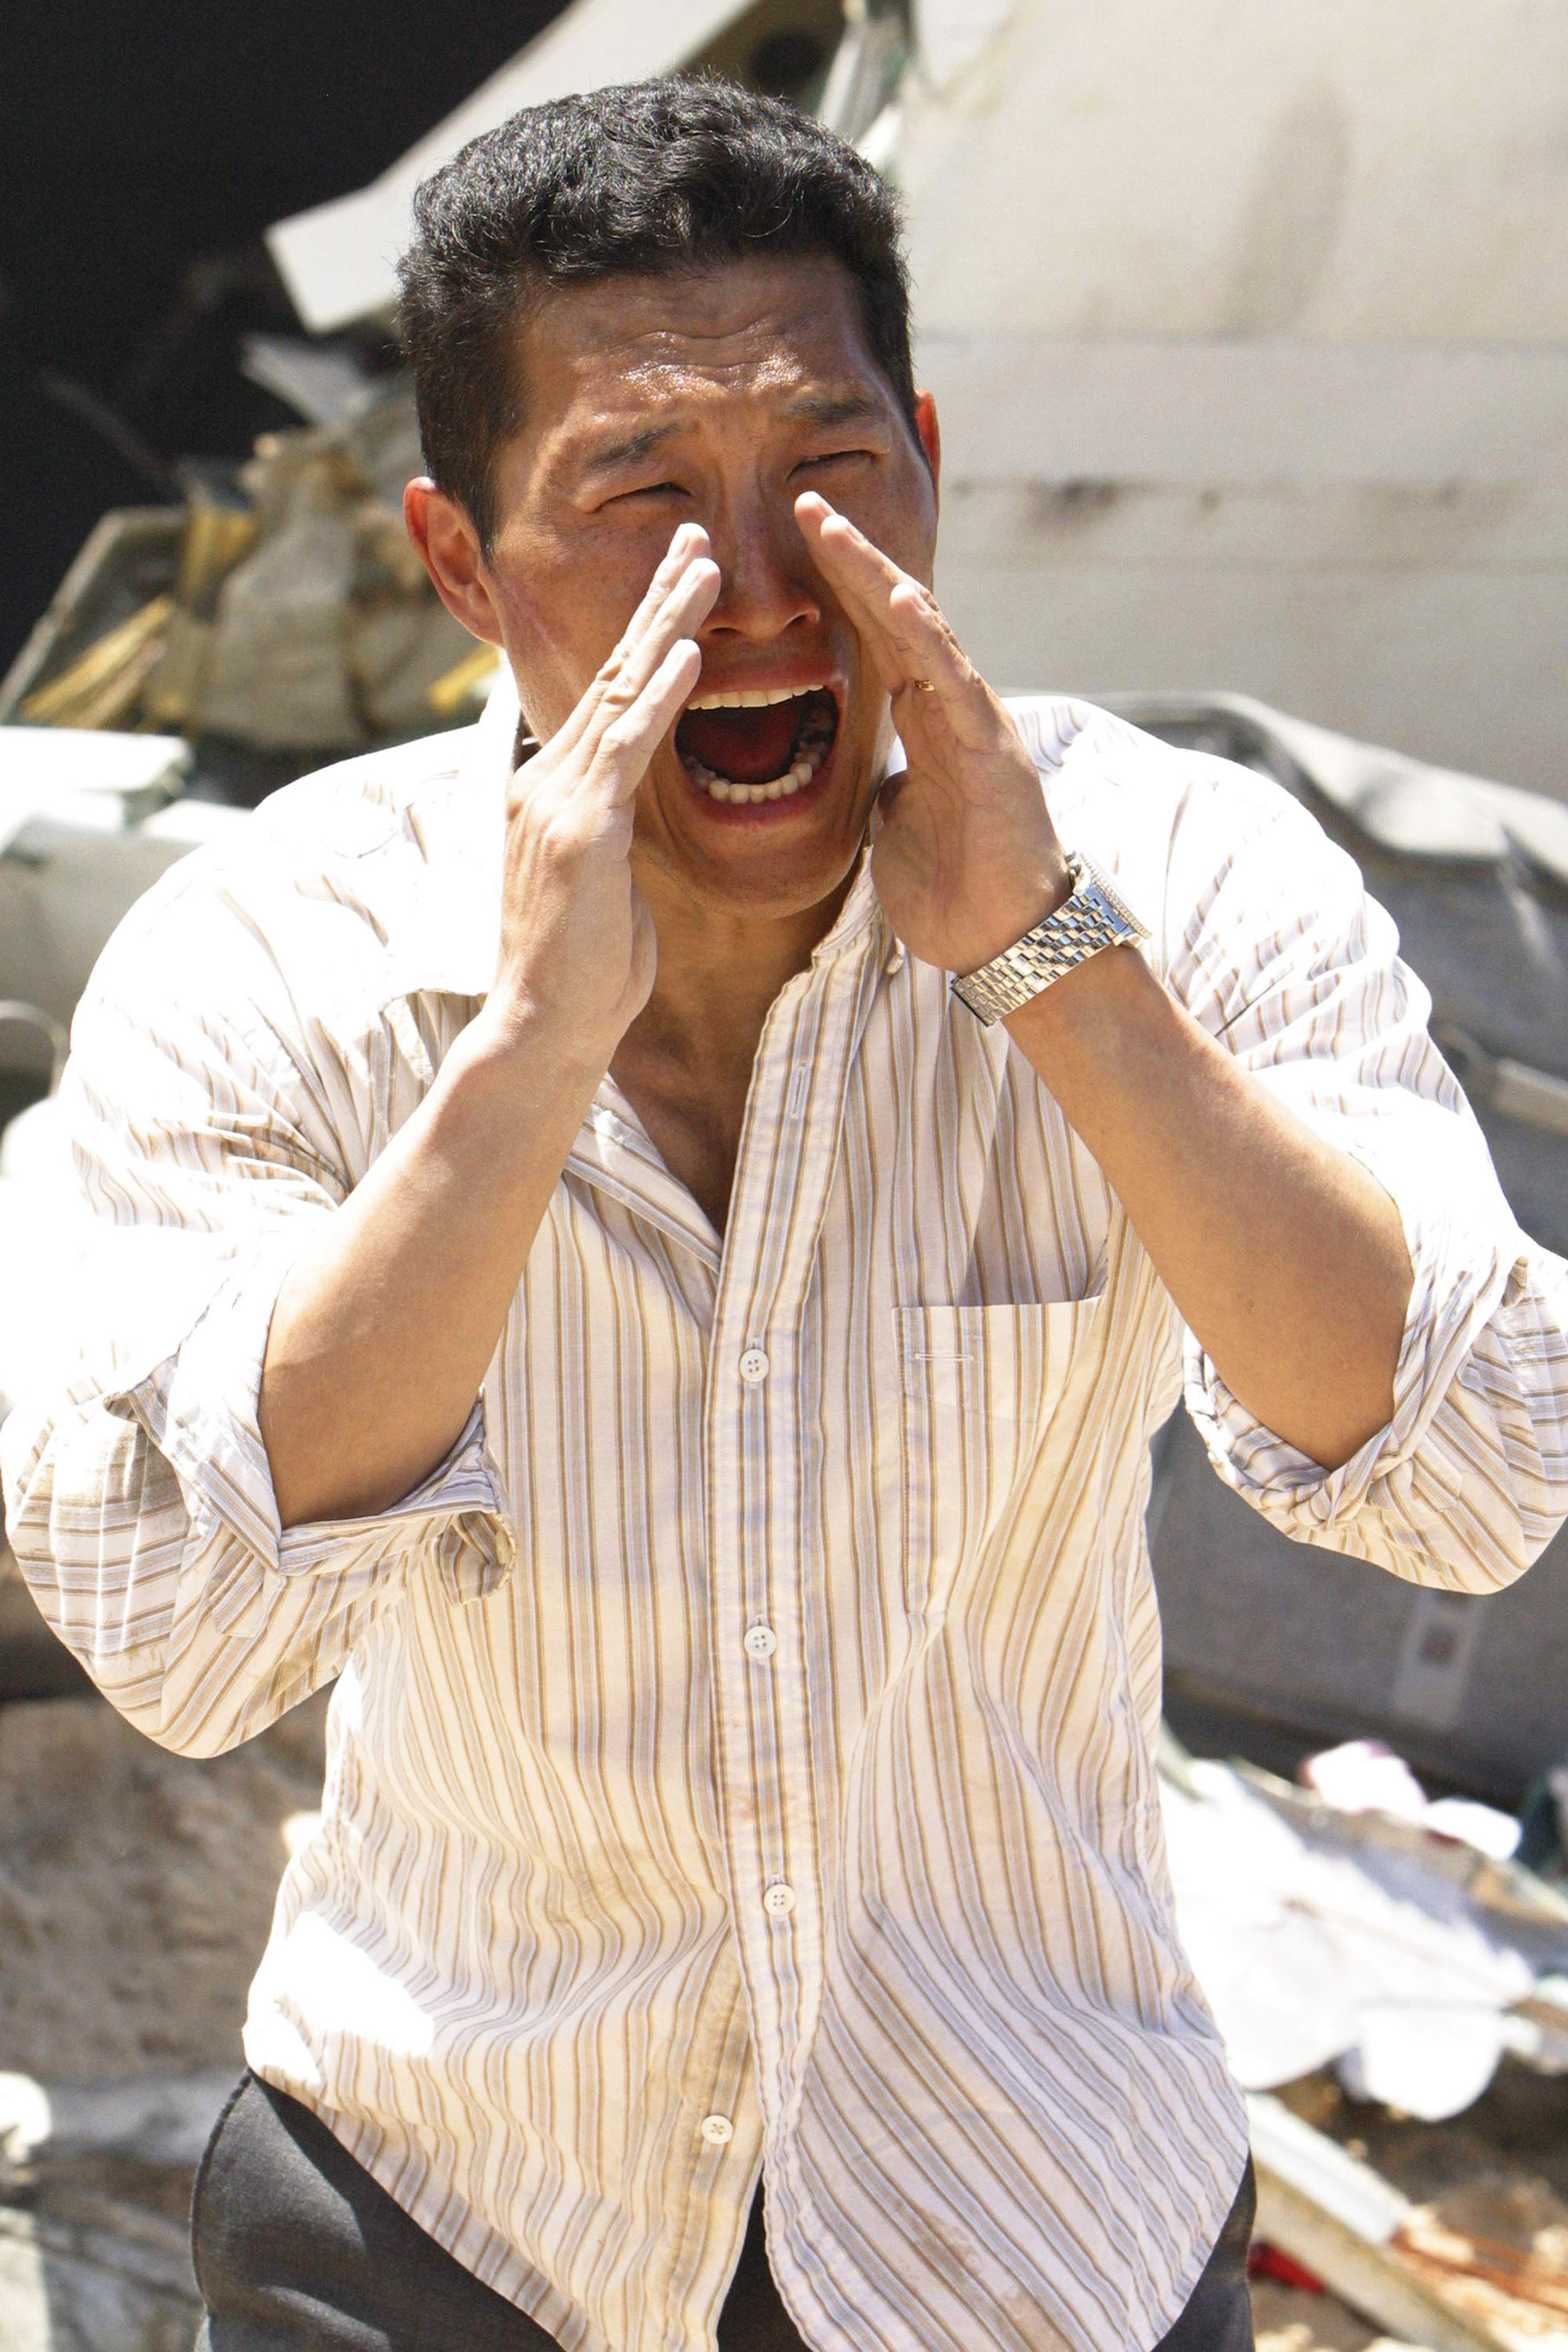 Kim yells with his hands over his hands in the TV show Lost